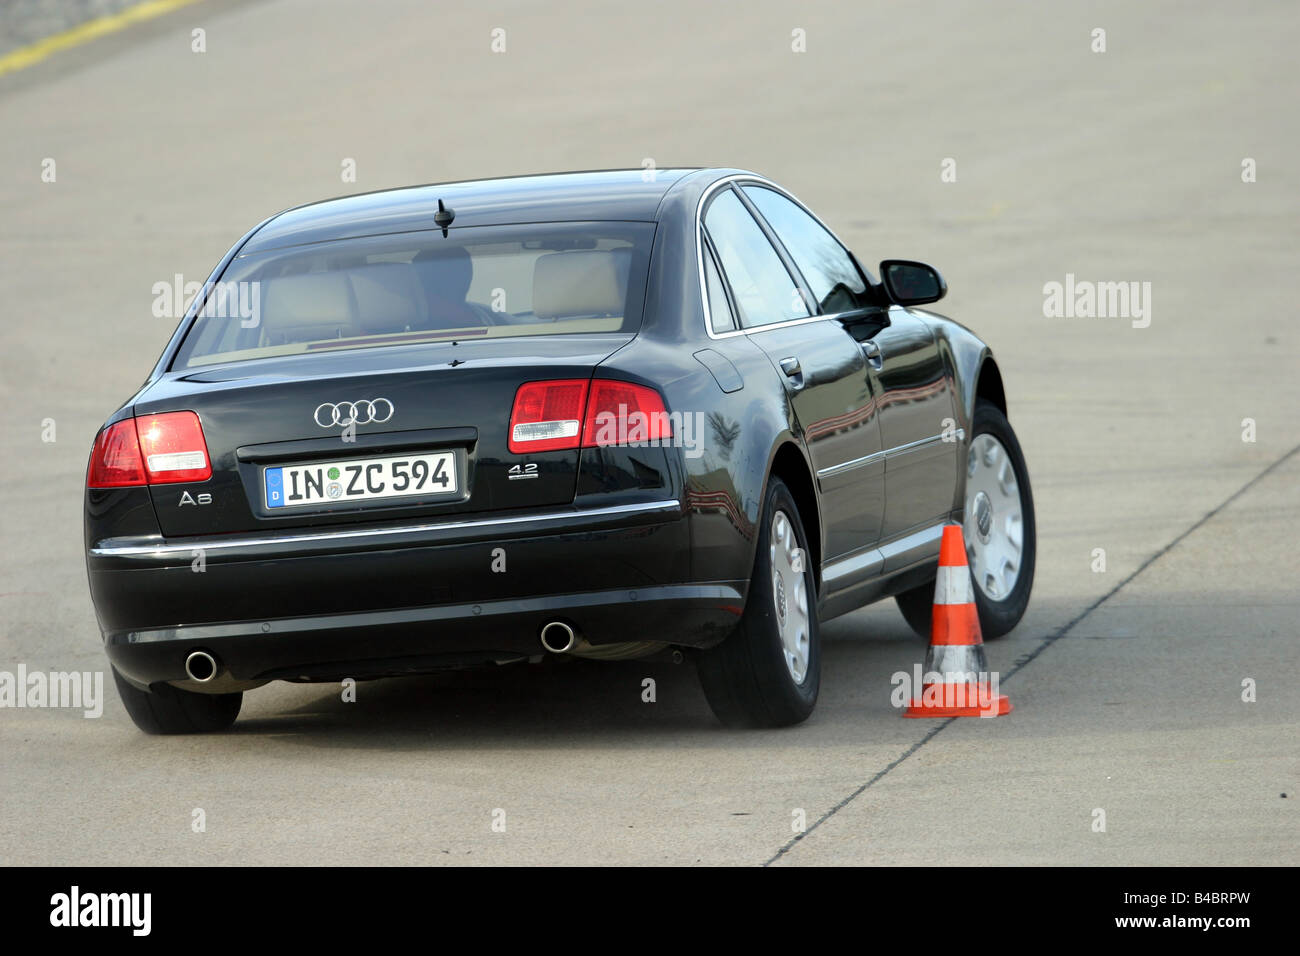 Audi a8 l 6 0 w12 quattro 2004 picture 3 of 5 rear angle image - Car Audi A8 4 2 Quattro Limousine Luxury Approx S Model Year